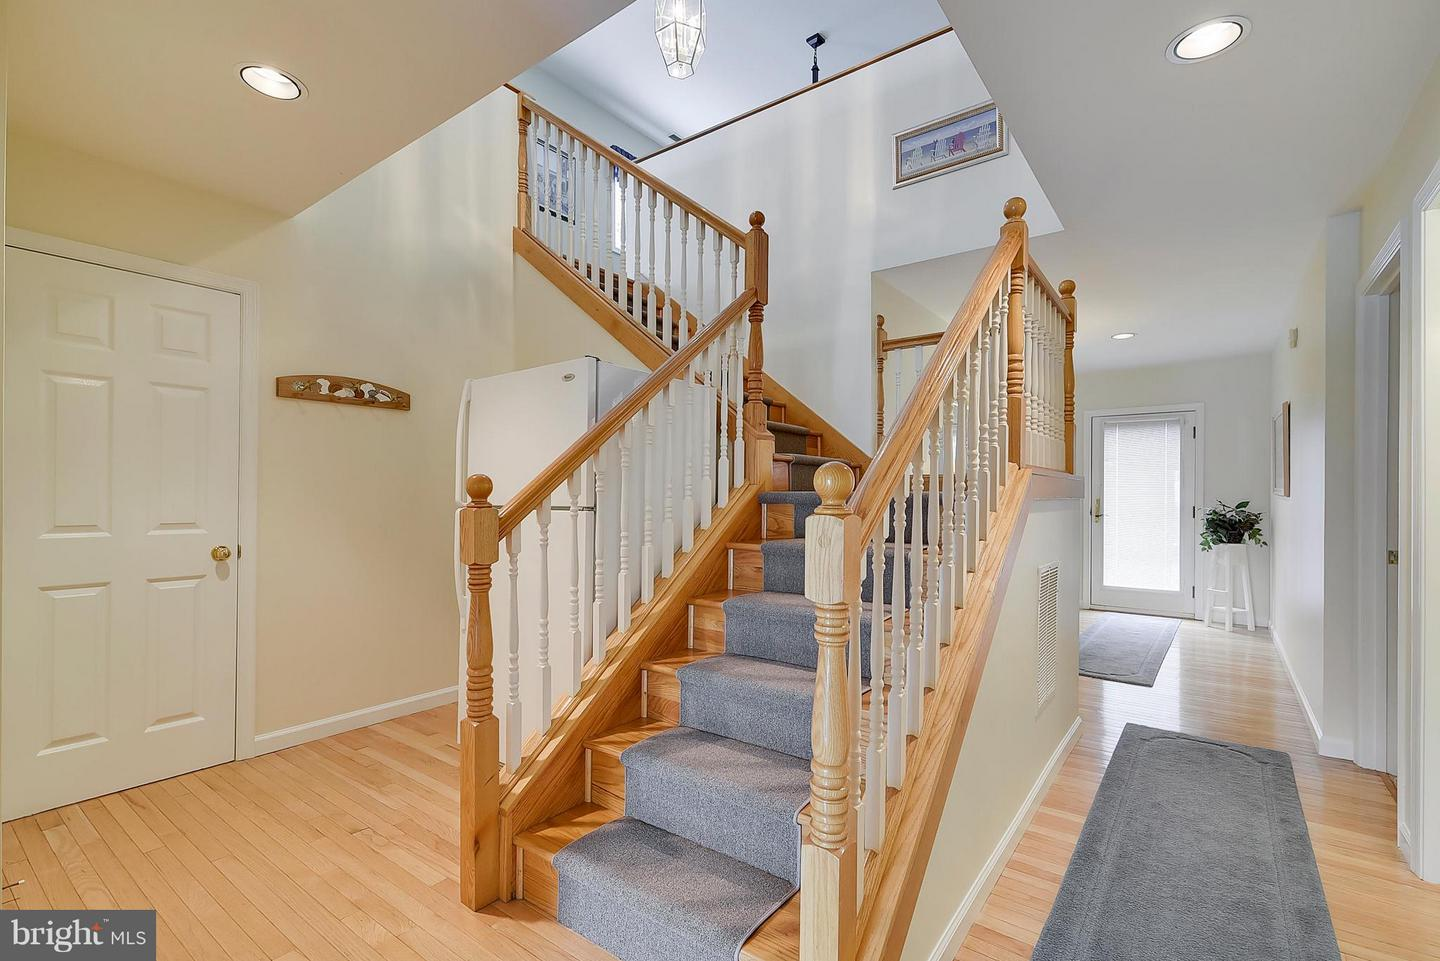 1002344128-300986983375-2018-11-07-14-16-58 39634 Seatrout Cir | North Bethany, DE Real Estate For Sale | MLS# 1002344128  - 1st Choice Properties